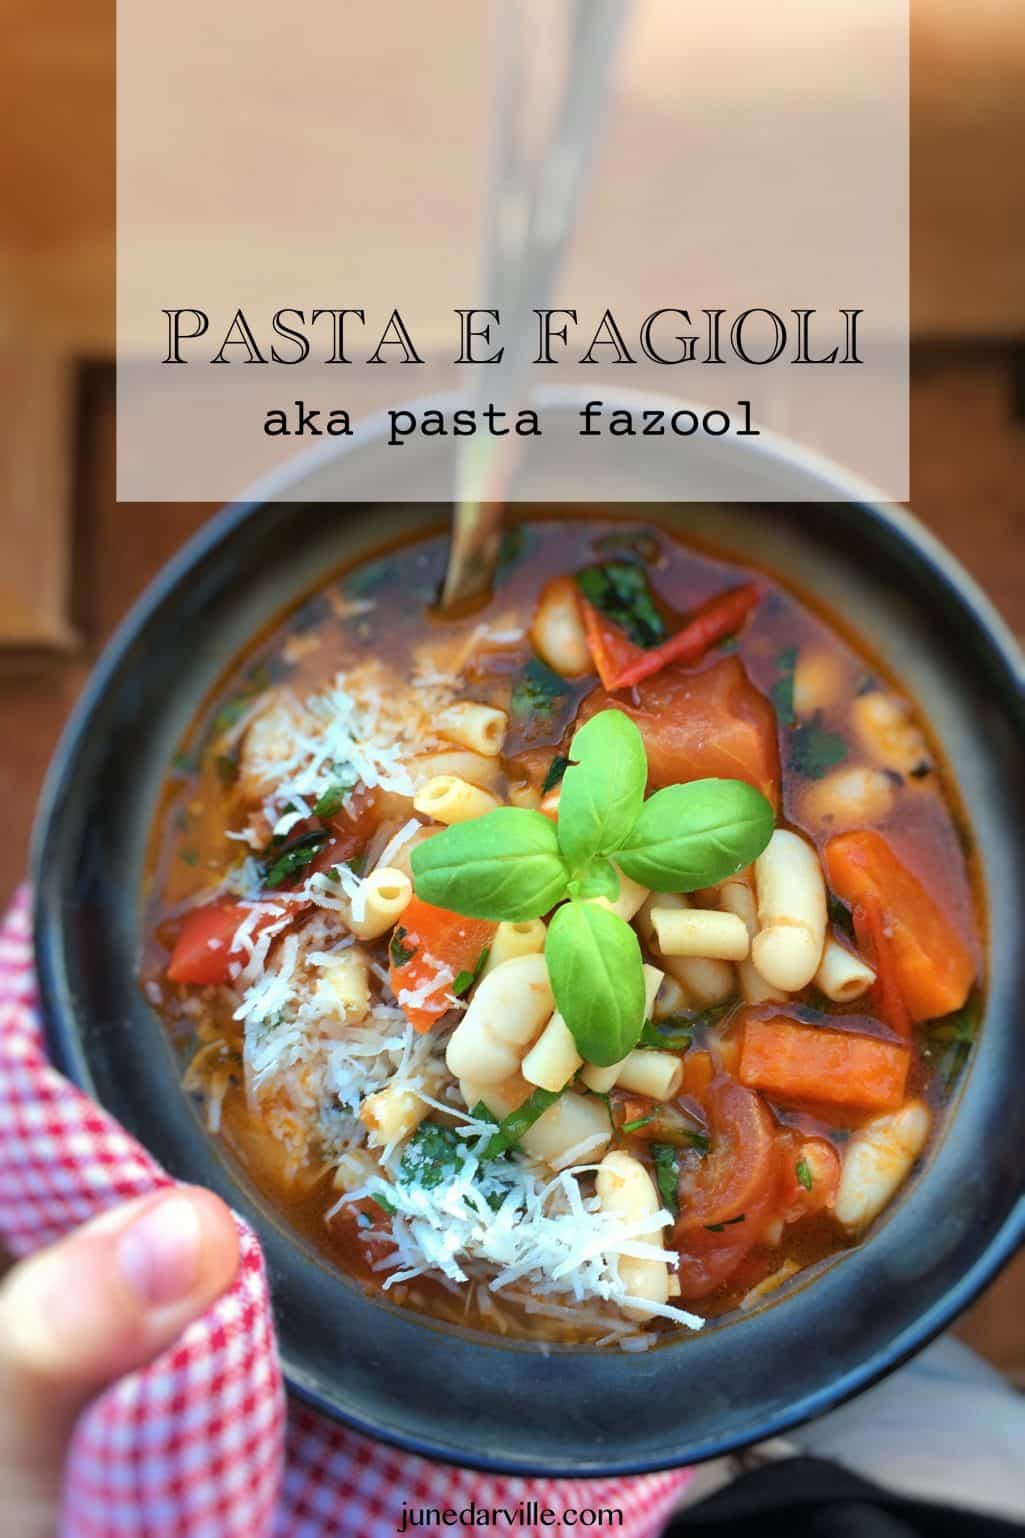 A classic Italian pasta and bean soup with fresh tomatoes and basil: here is my homemade pasta fazool soup with pasta and beans!